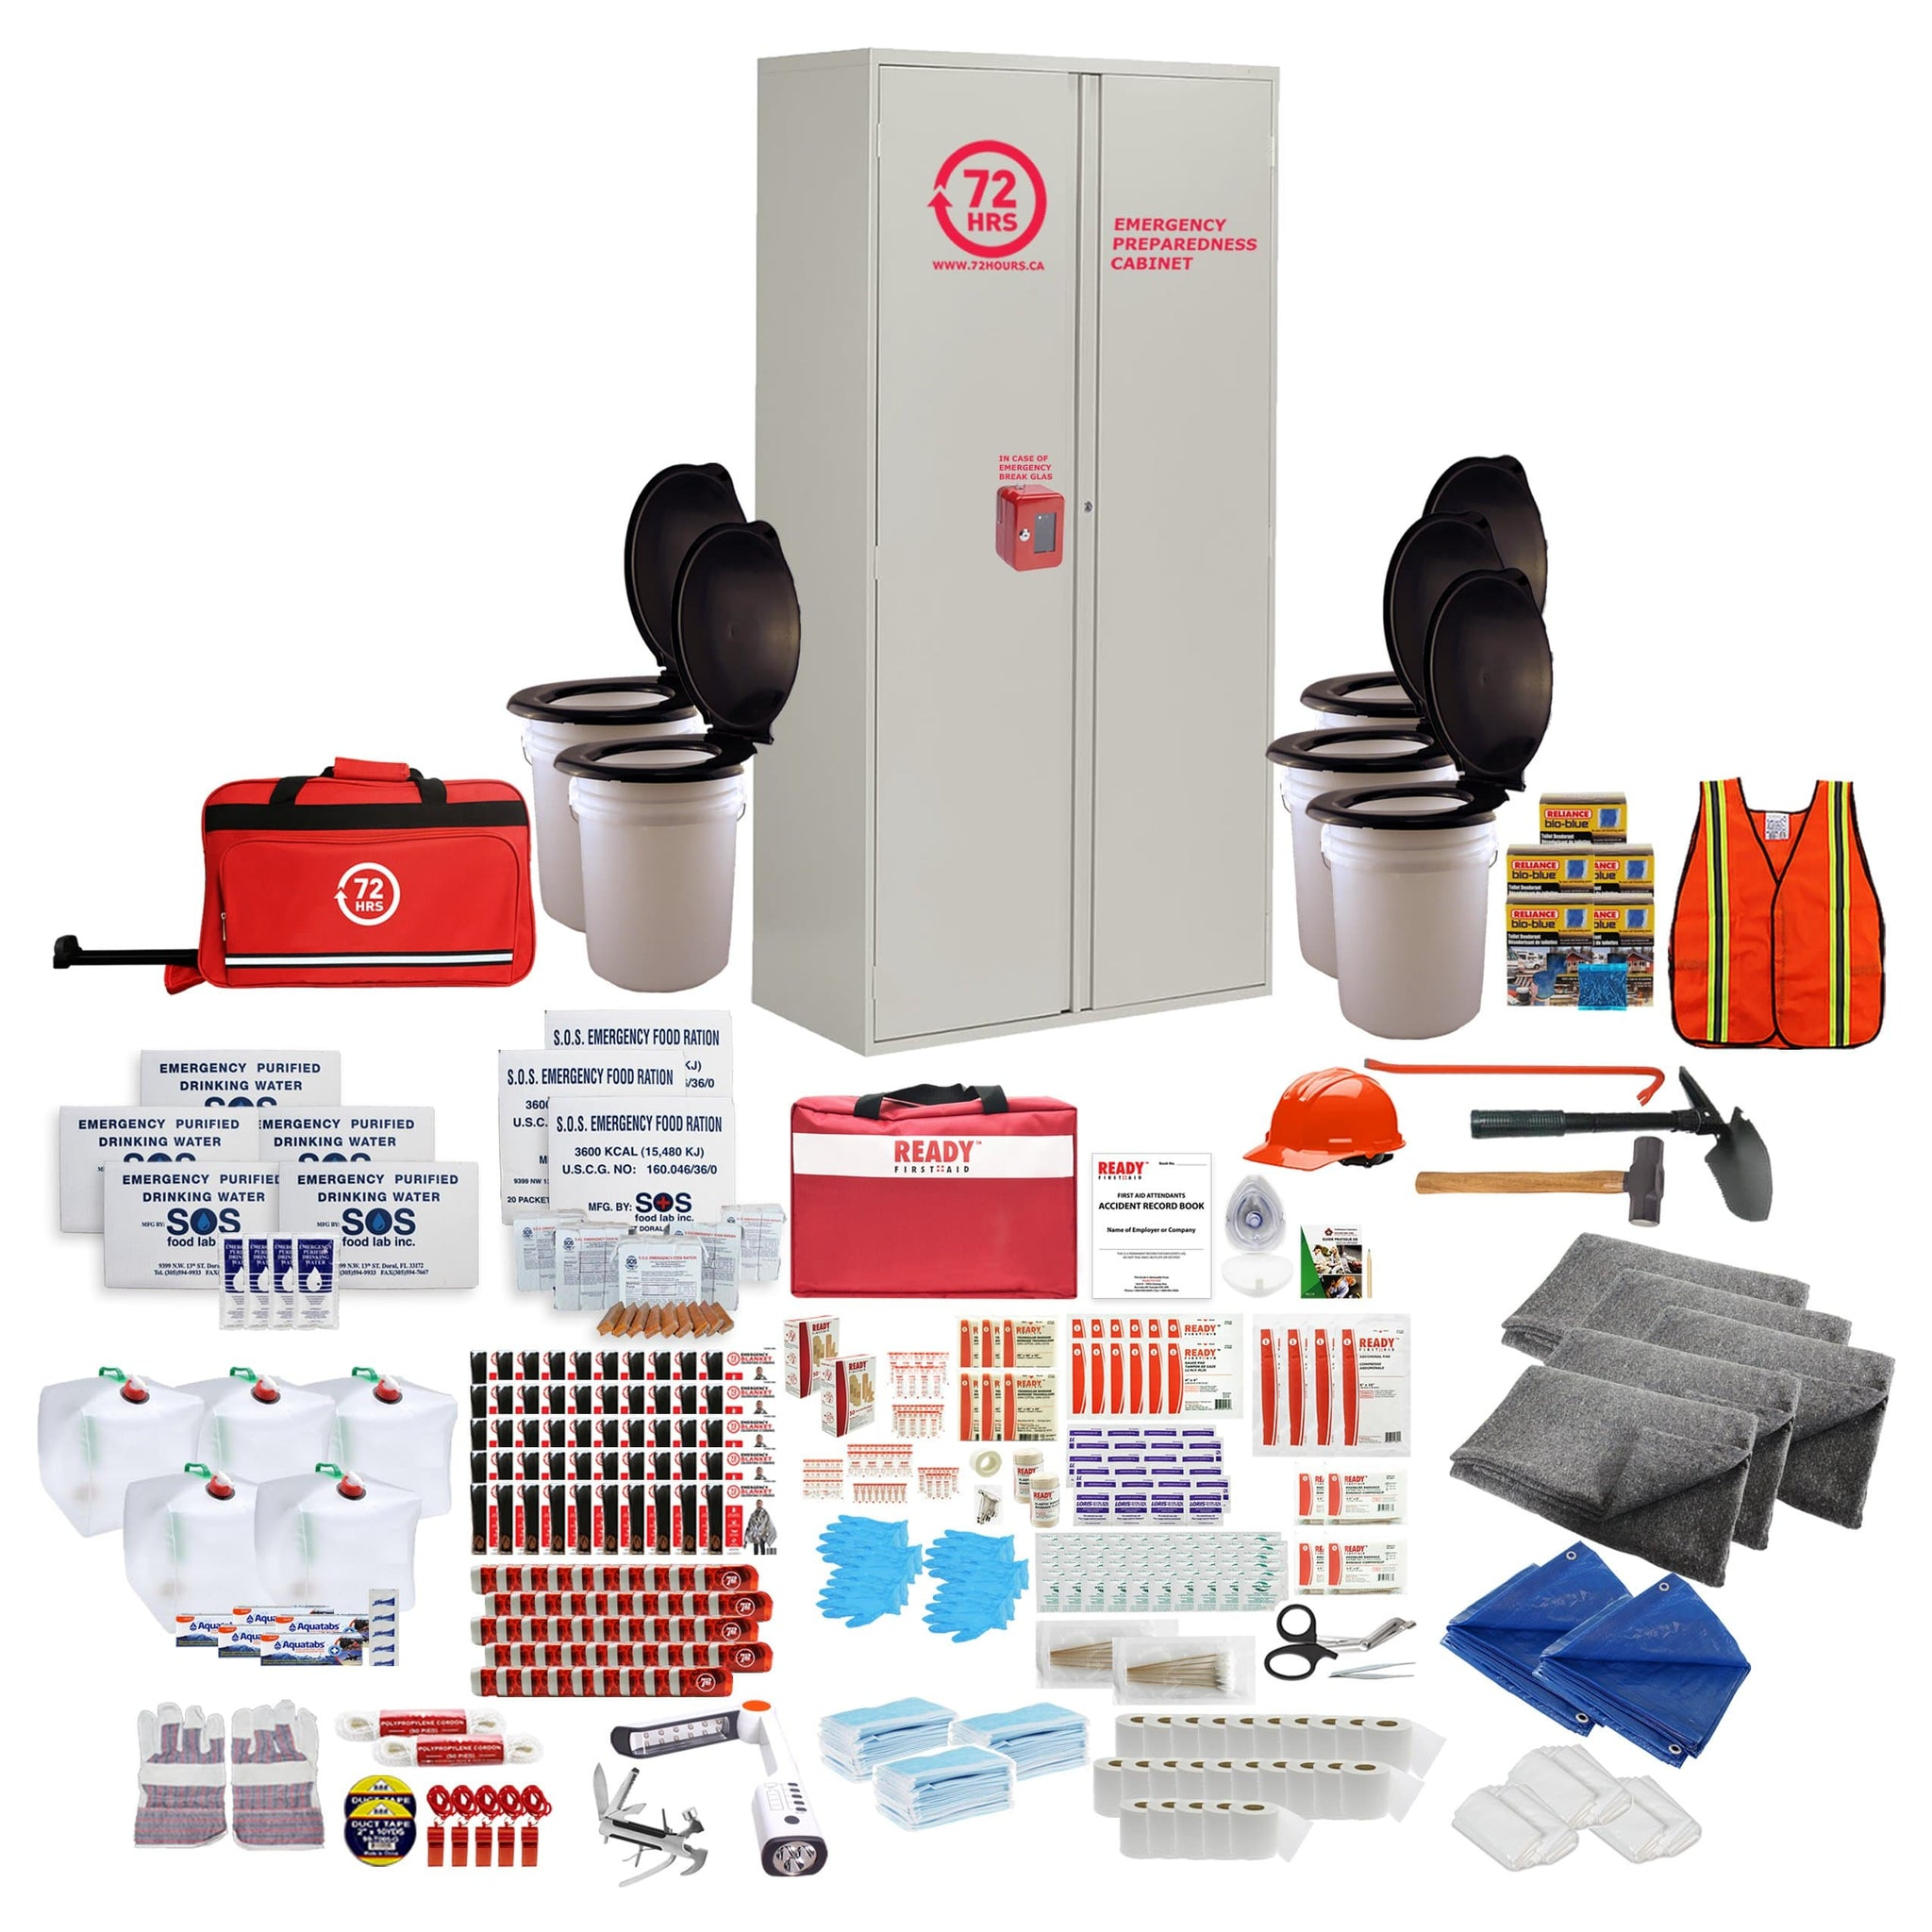 72HRS 50 people emergency cabinet kit with contents laid ouside of cabinet